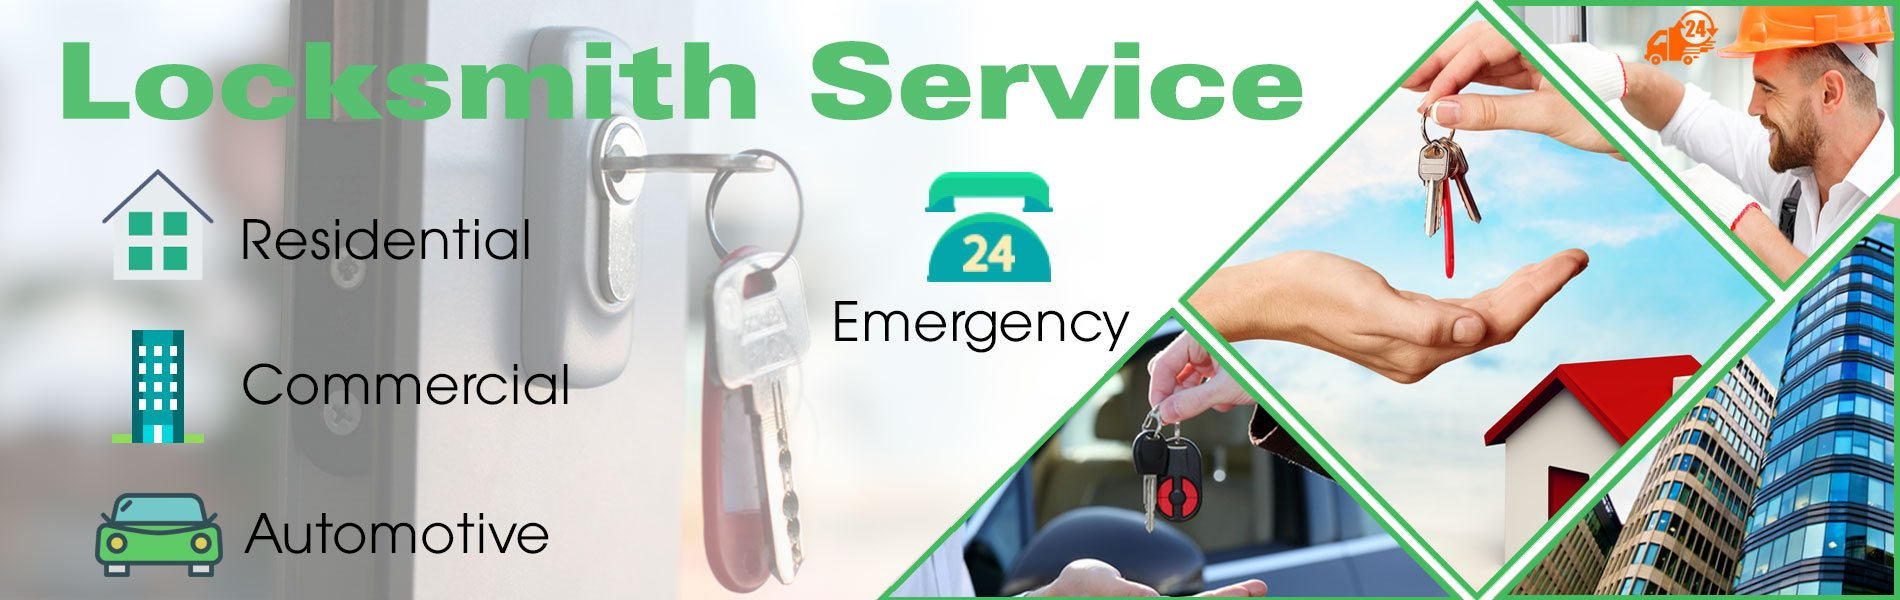 Lock Safe Services Orange, NJ 973-864-3112